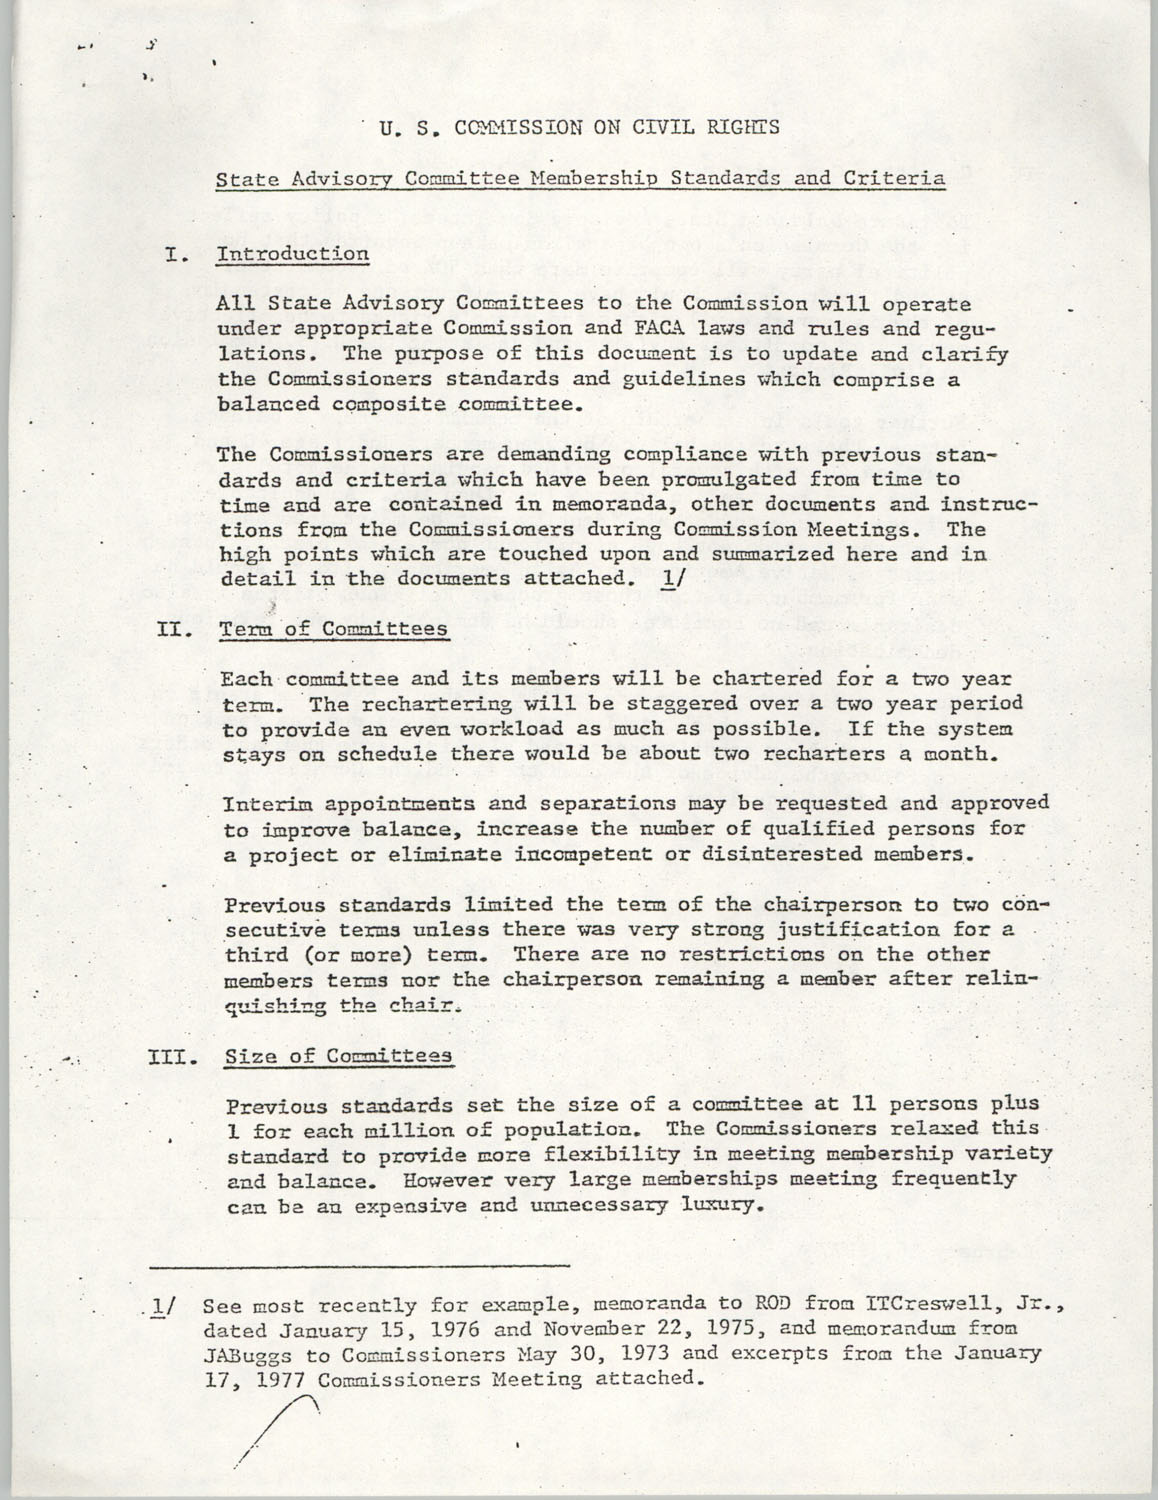 SAC Membership Standards and Criteria, United States Commission on Civil Rights, February 16, 1977